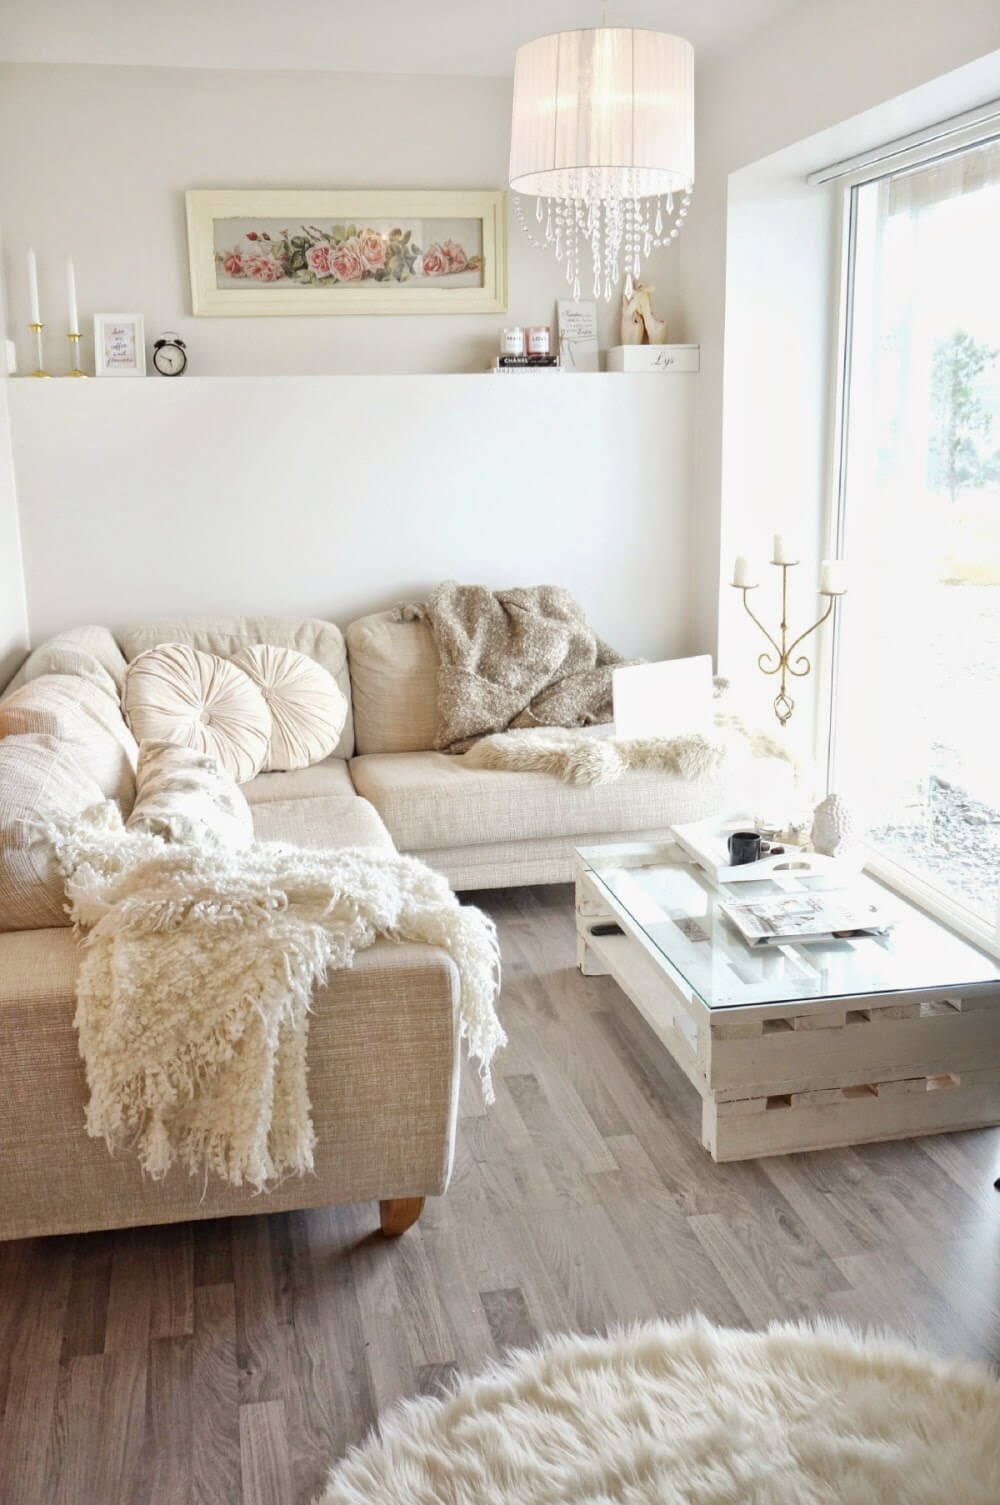 Light Colors Make the Room Look Larger